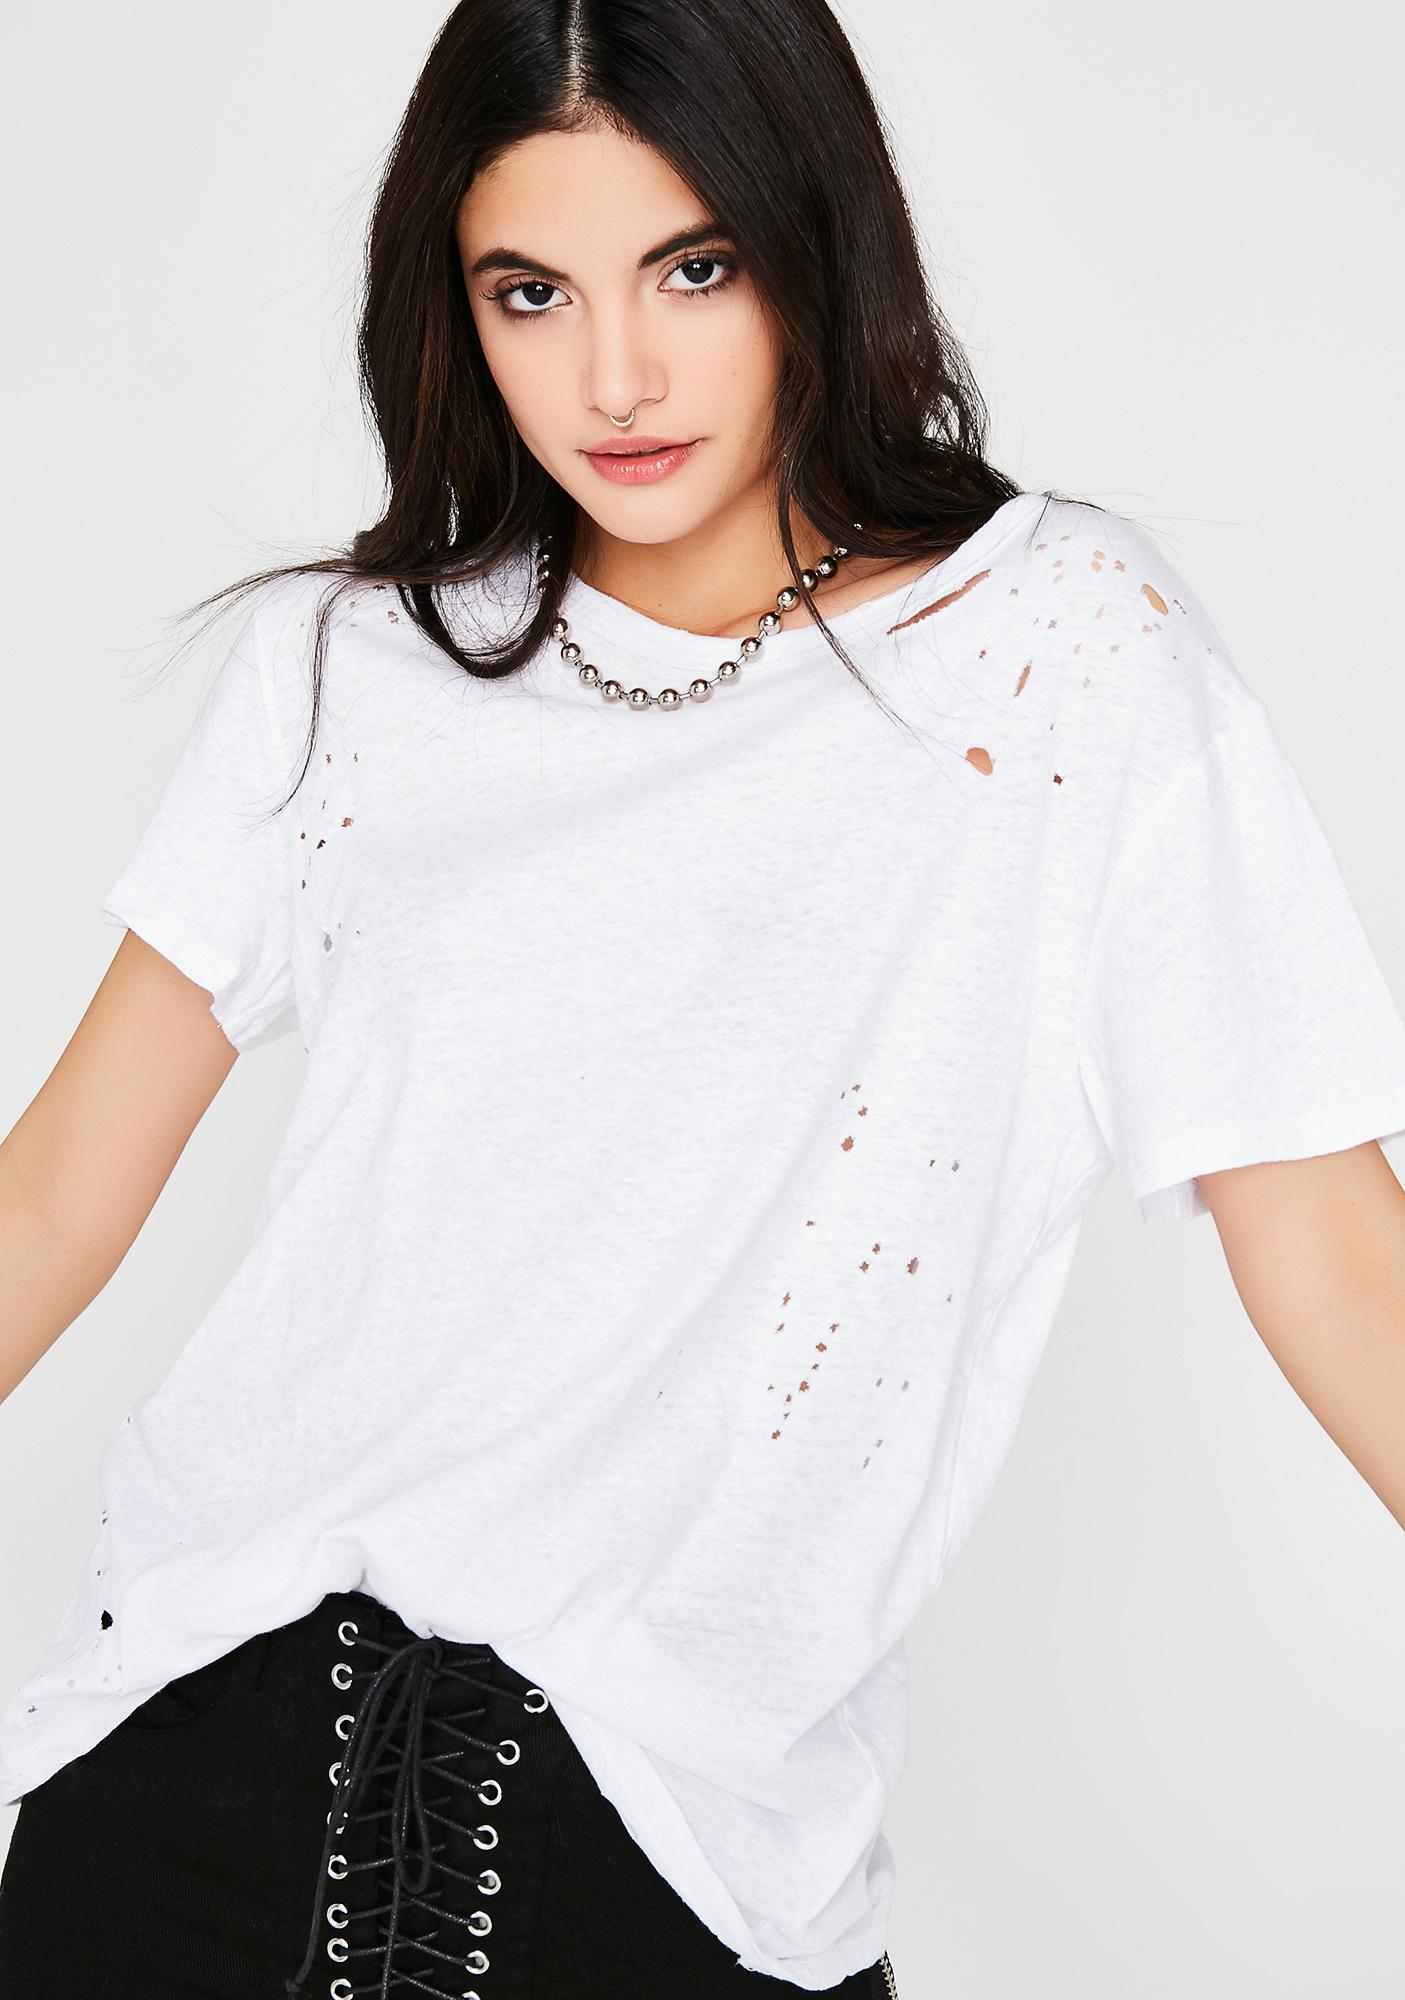 Icy Keep It Cool Distressed Tee